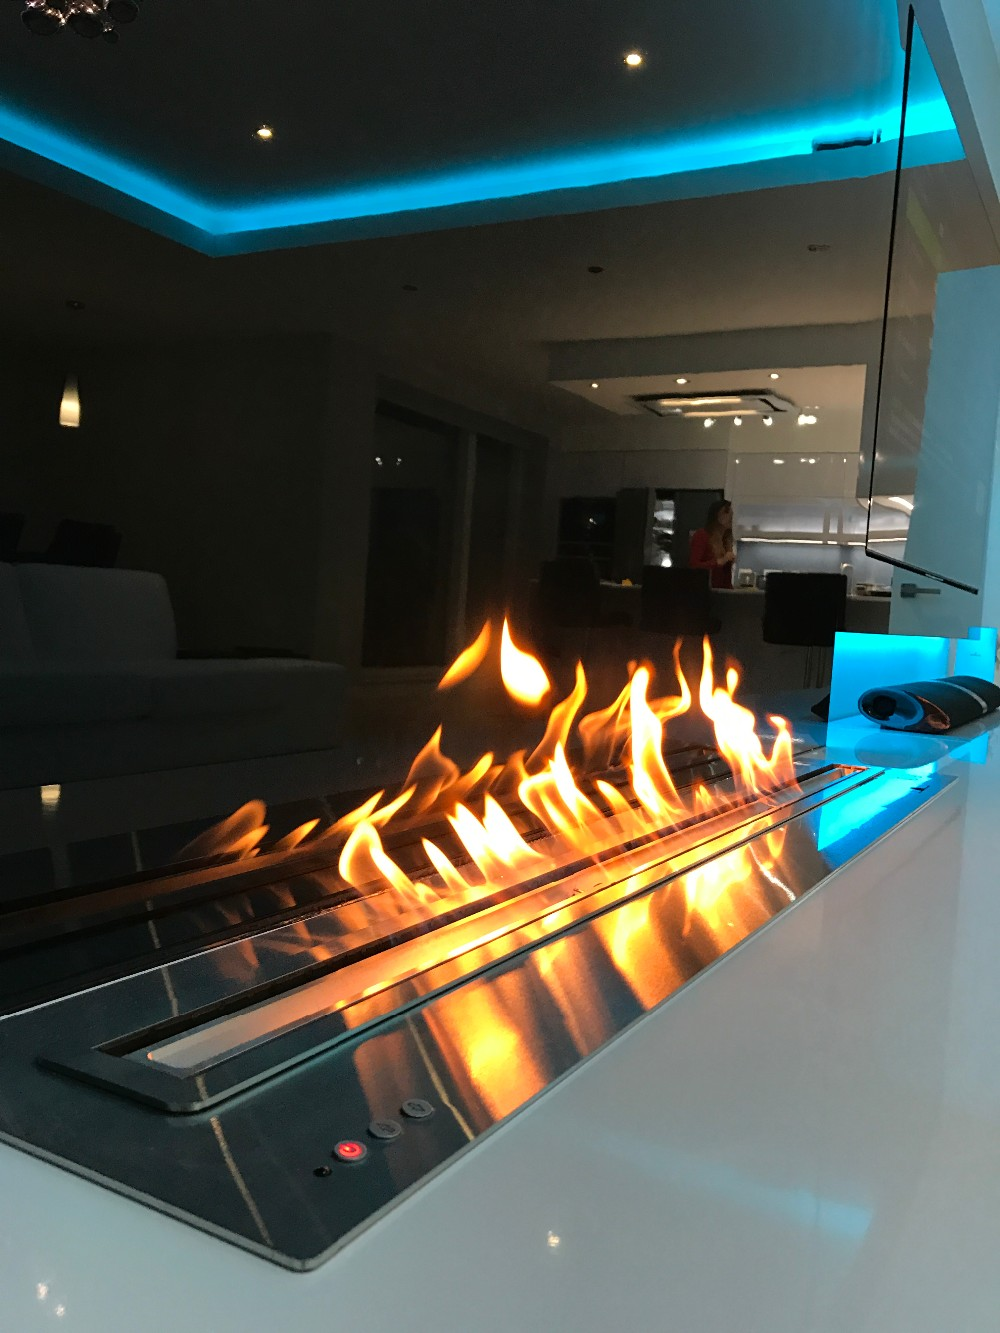 Hot Sale 48 Inches Bio Ethanol Insert Fireplace Gel Fuel Burner With Remote Control